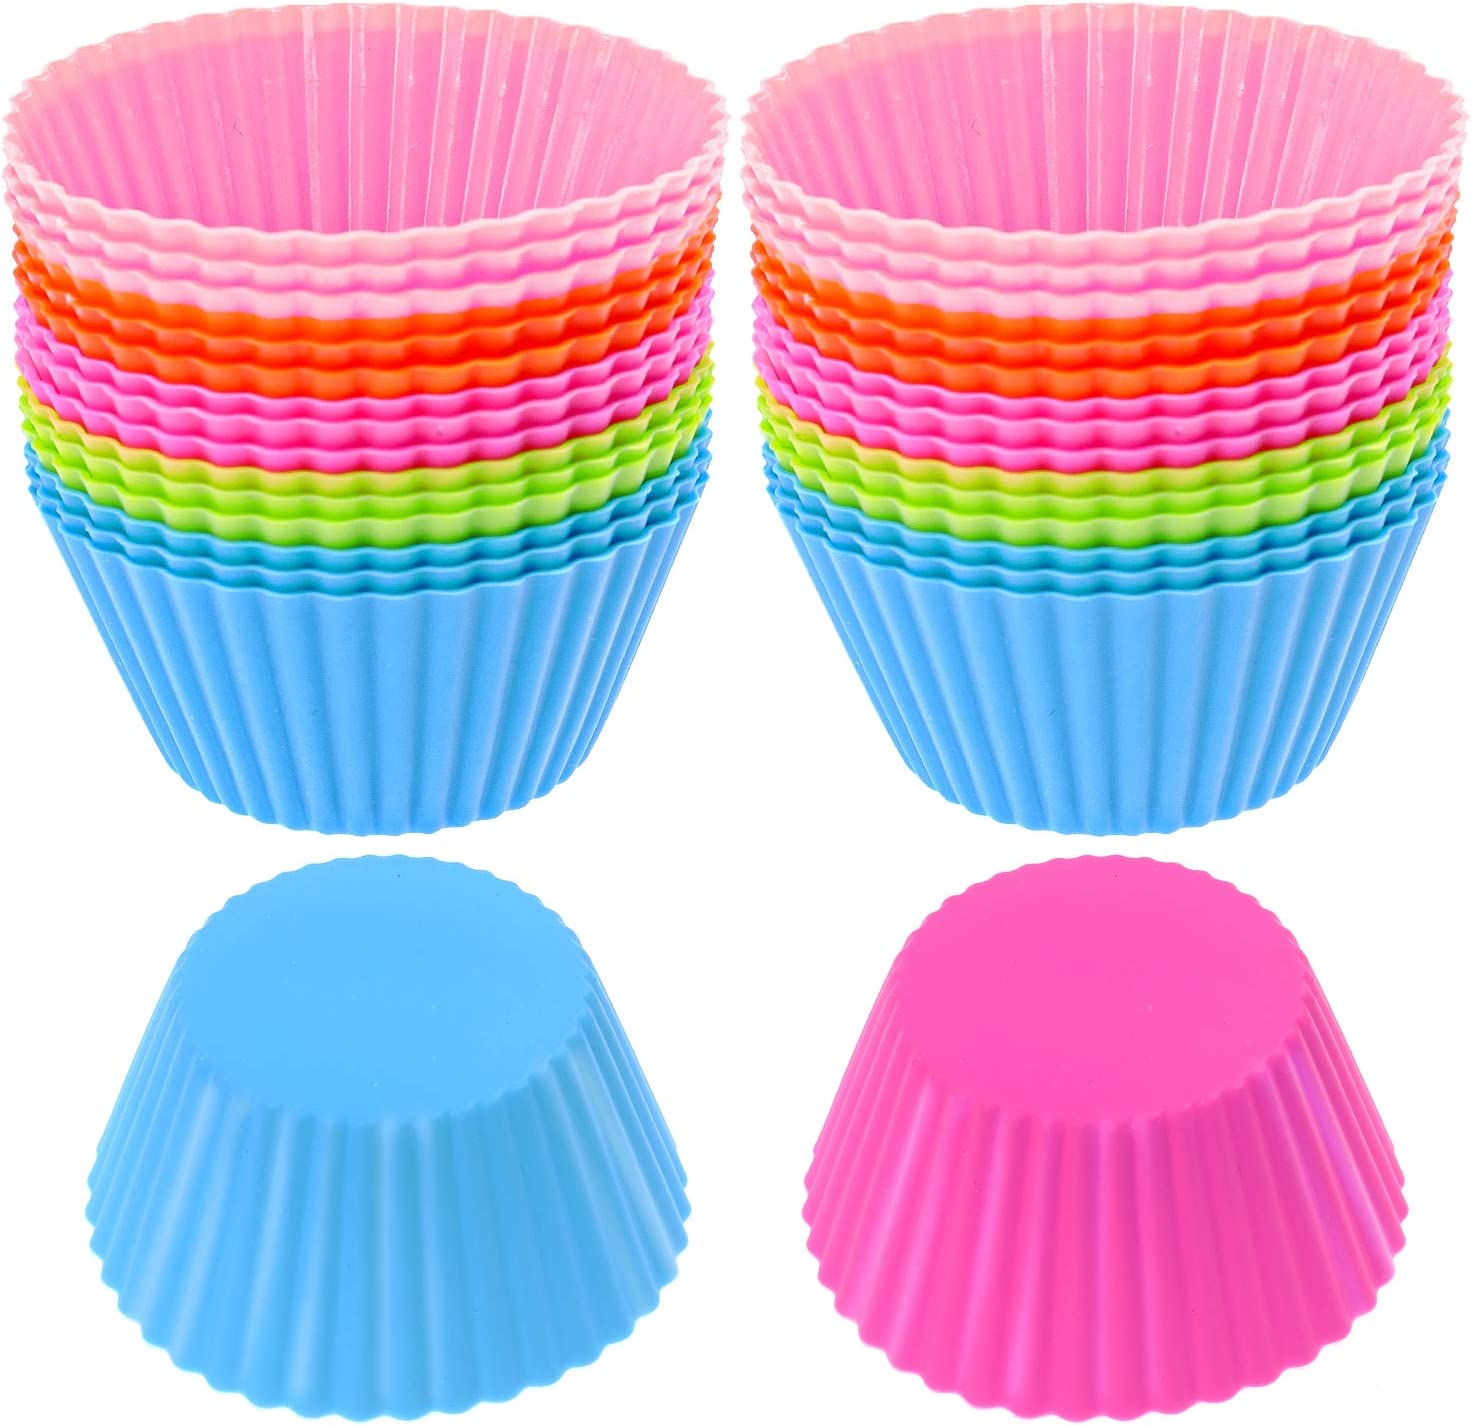 STSUNEU 36pcs Nonstick Silicone Baking Cups, 2.7Inch Reusable Food Grade Silicone Cupcake Liners Holders Resusable Silicone Muffin Cups Liners